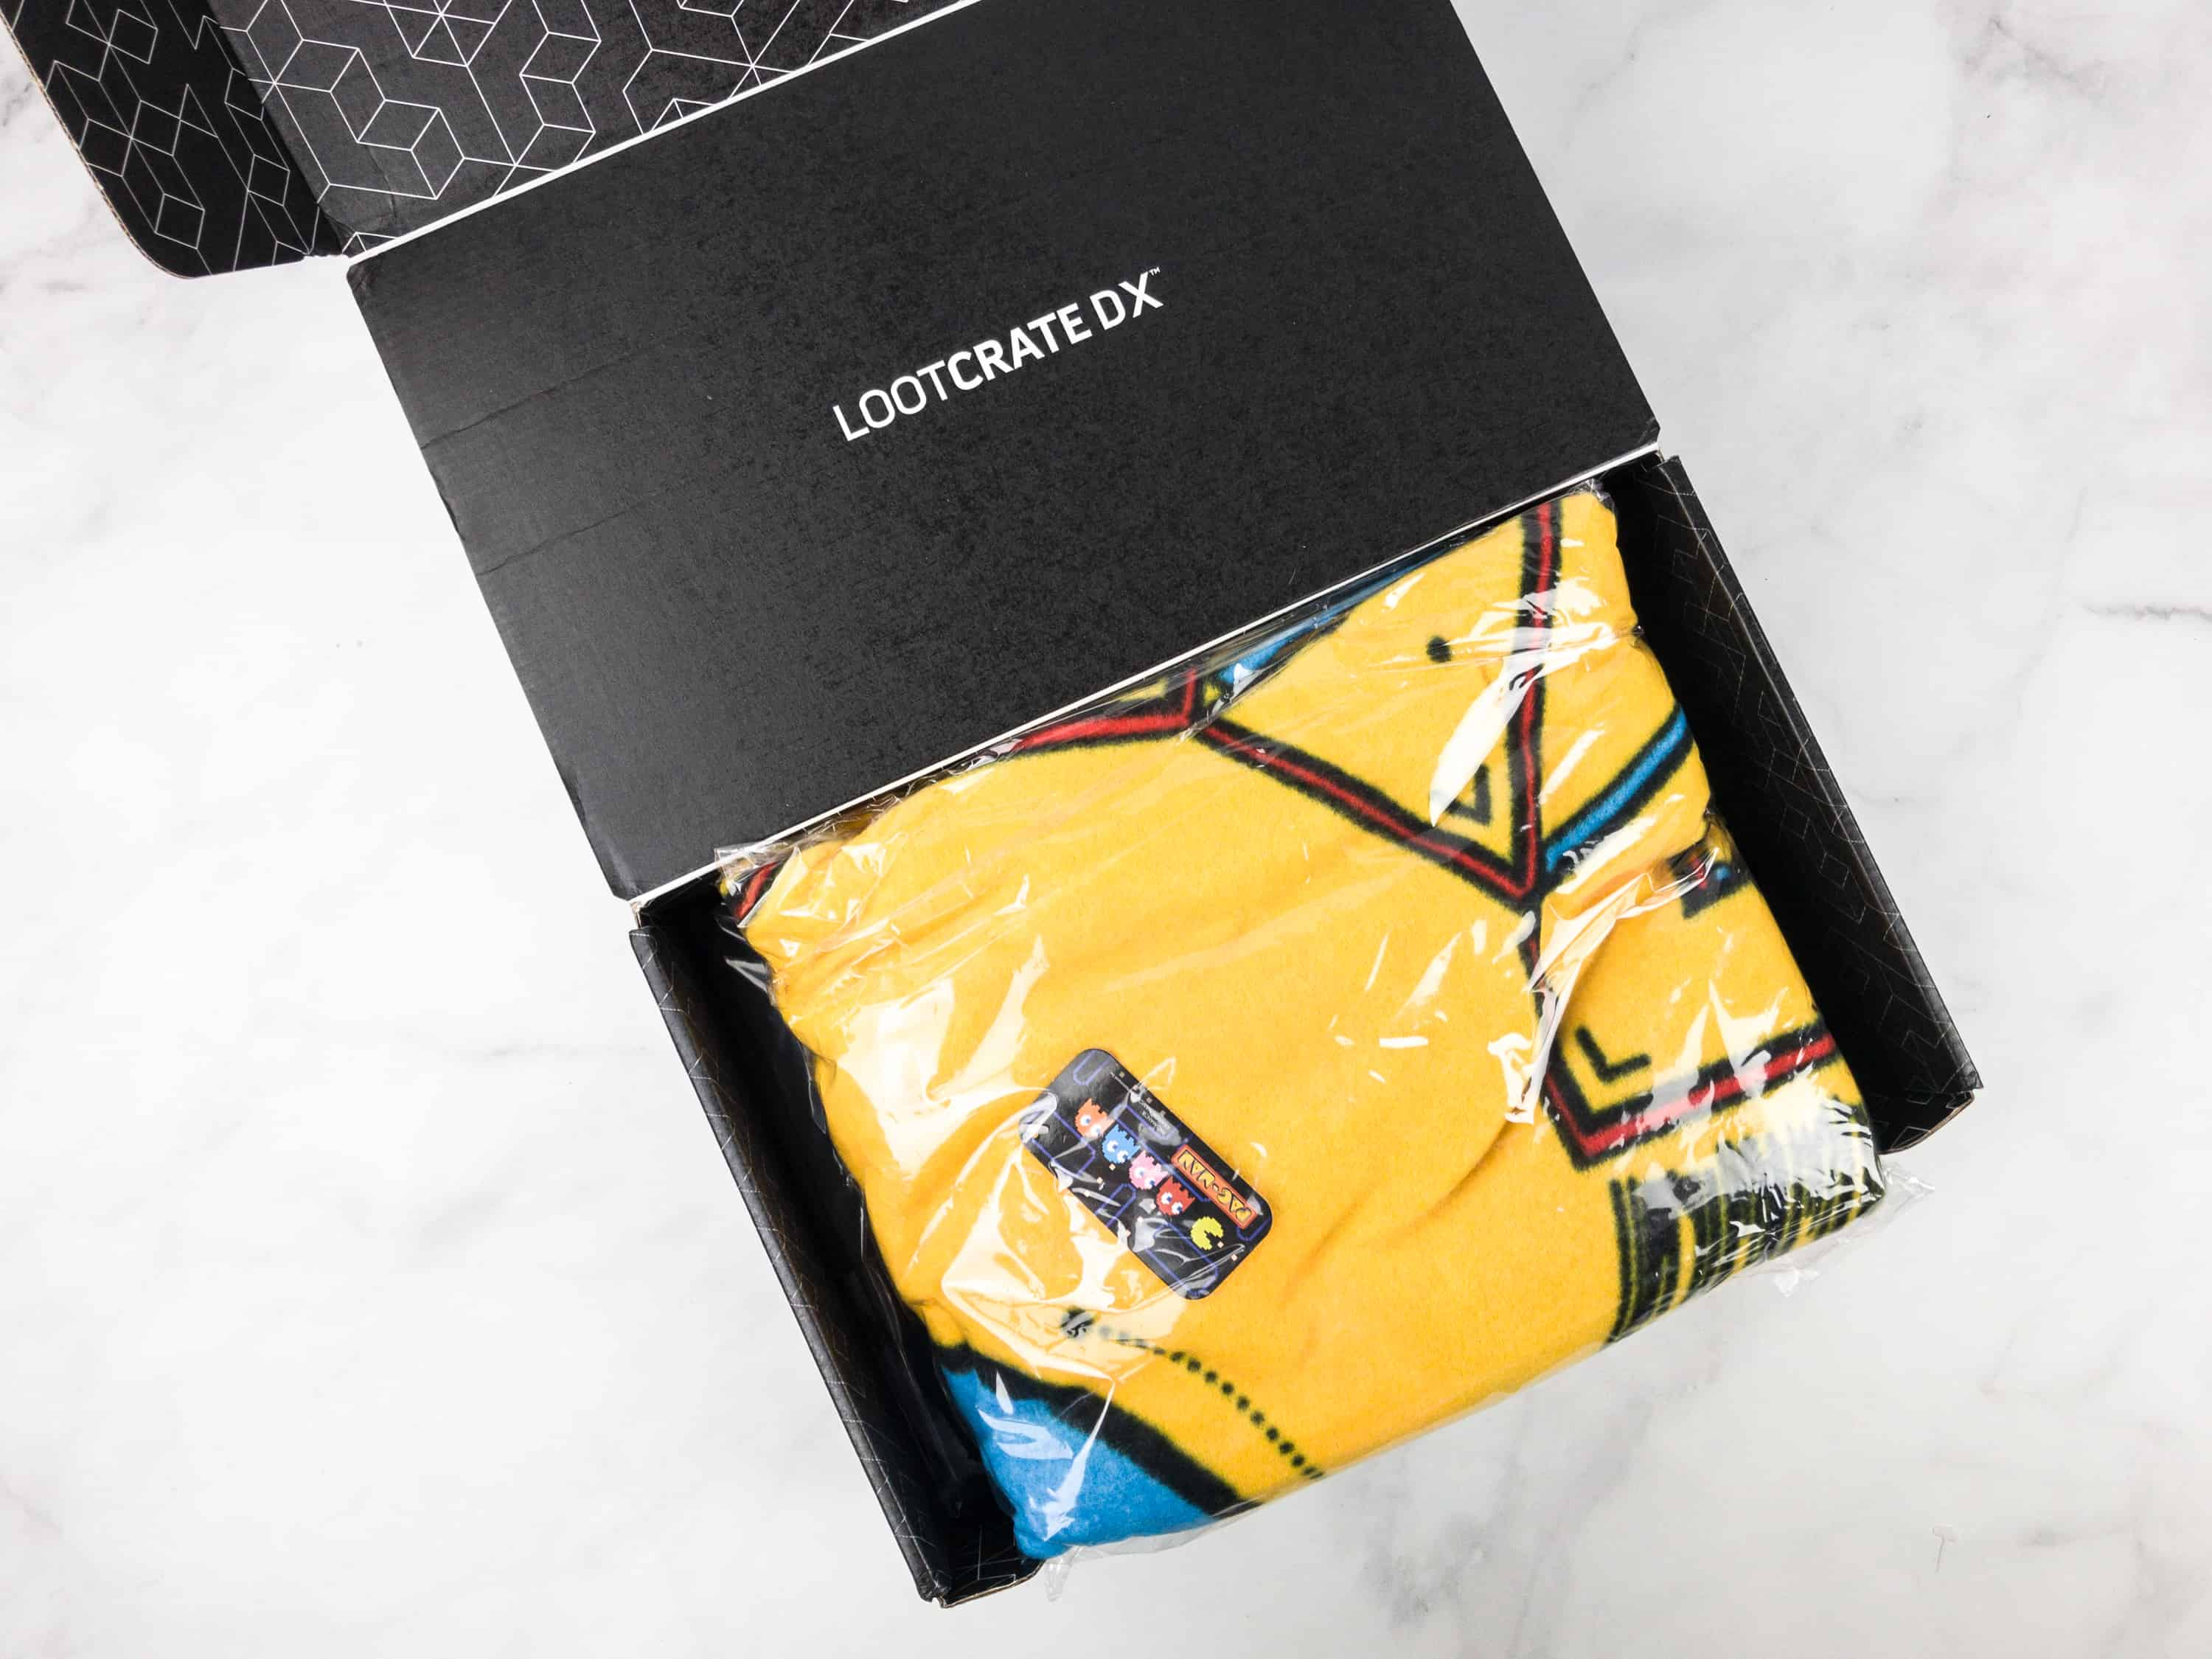 Loot crate dx march 2018 subscription box review coupon hello deal save 5 on your first month with coupon code hellosubscription or save 10 on your entire subscription fandeluxe Choice Image